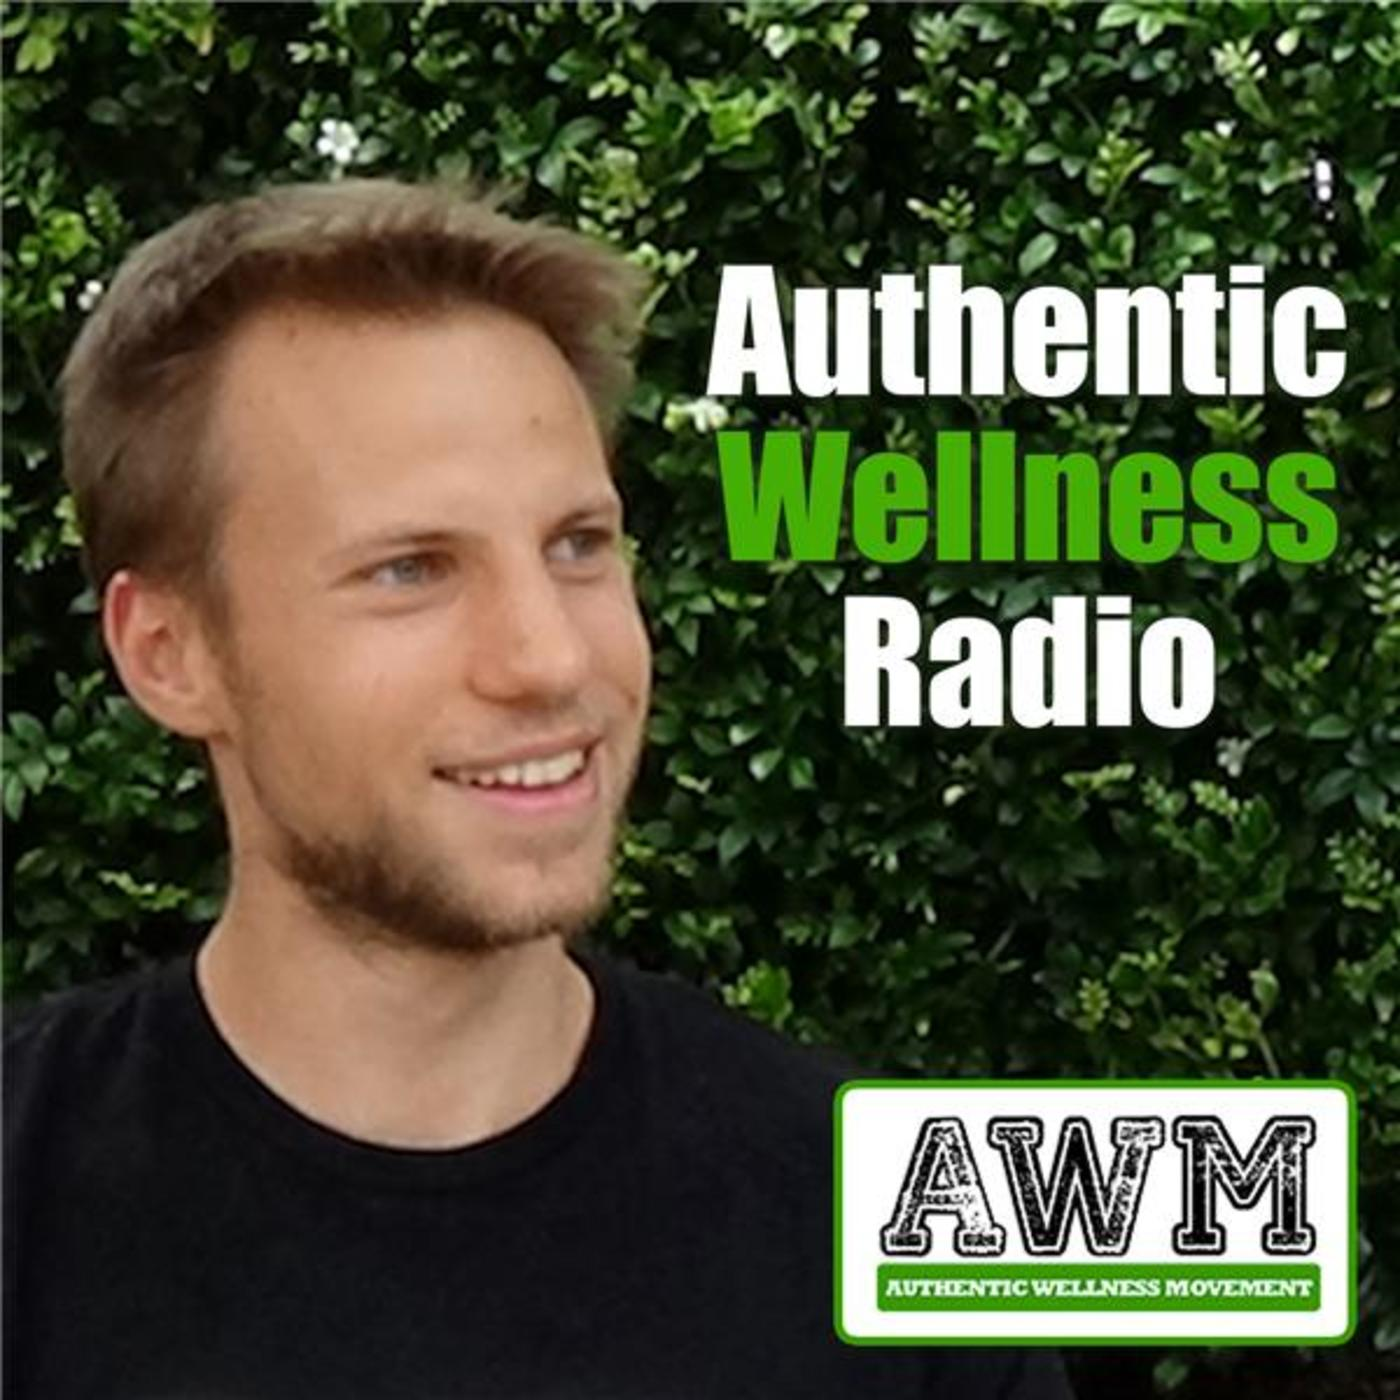 Authentic Wellness Radio